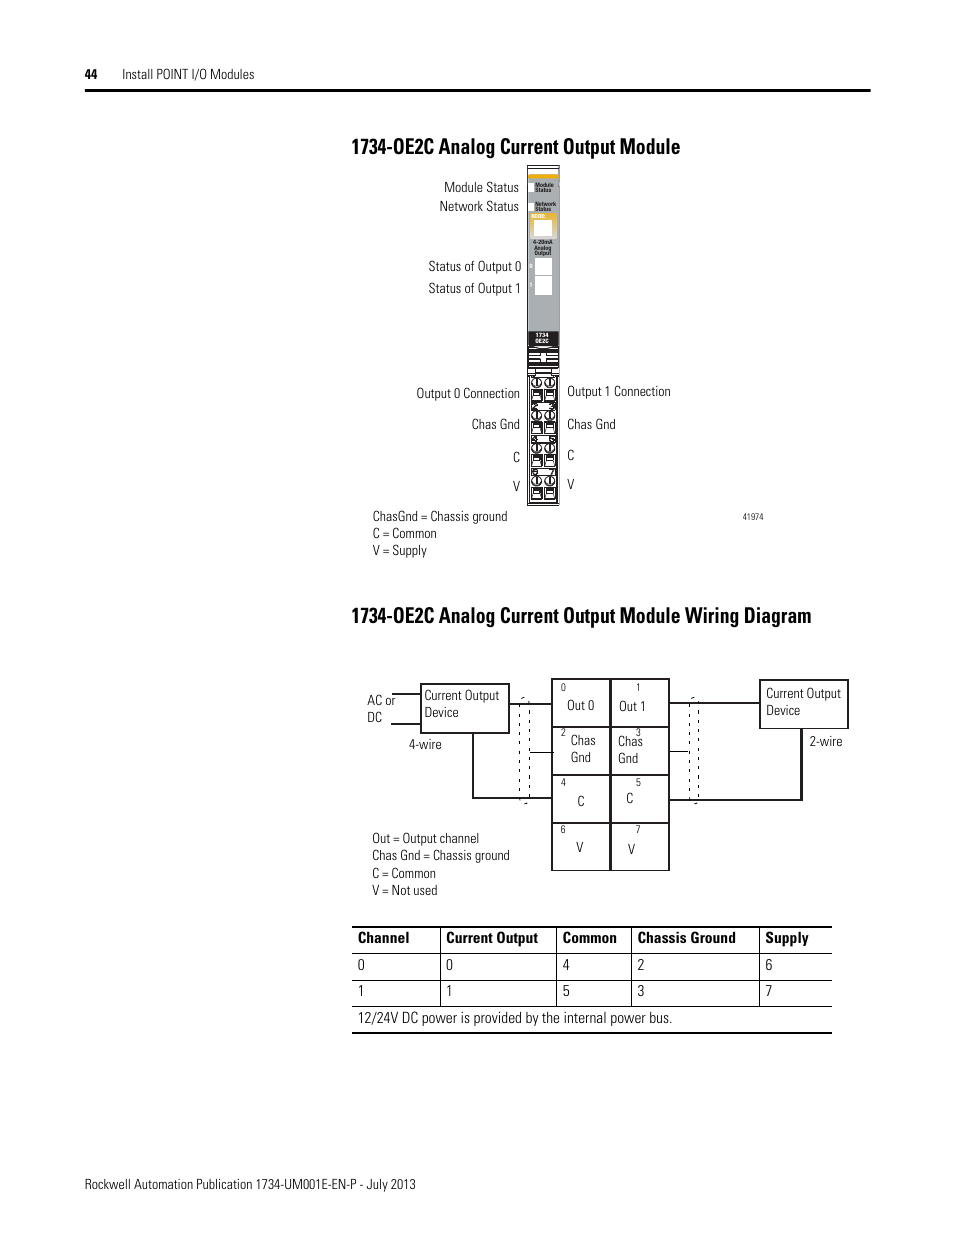 medium resolution of 1734 oe2c analog current output module rockwell automation 1734 xxxx point i o digital and analog modules and pointblock i o modules user manual page 60